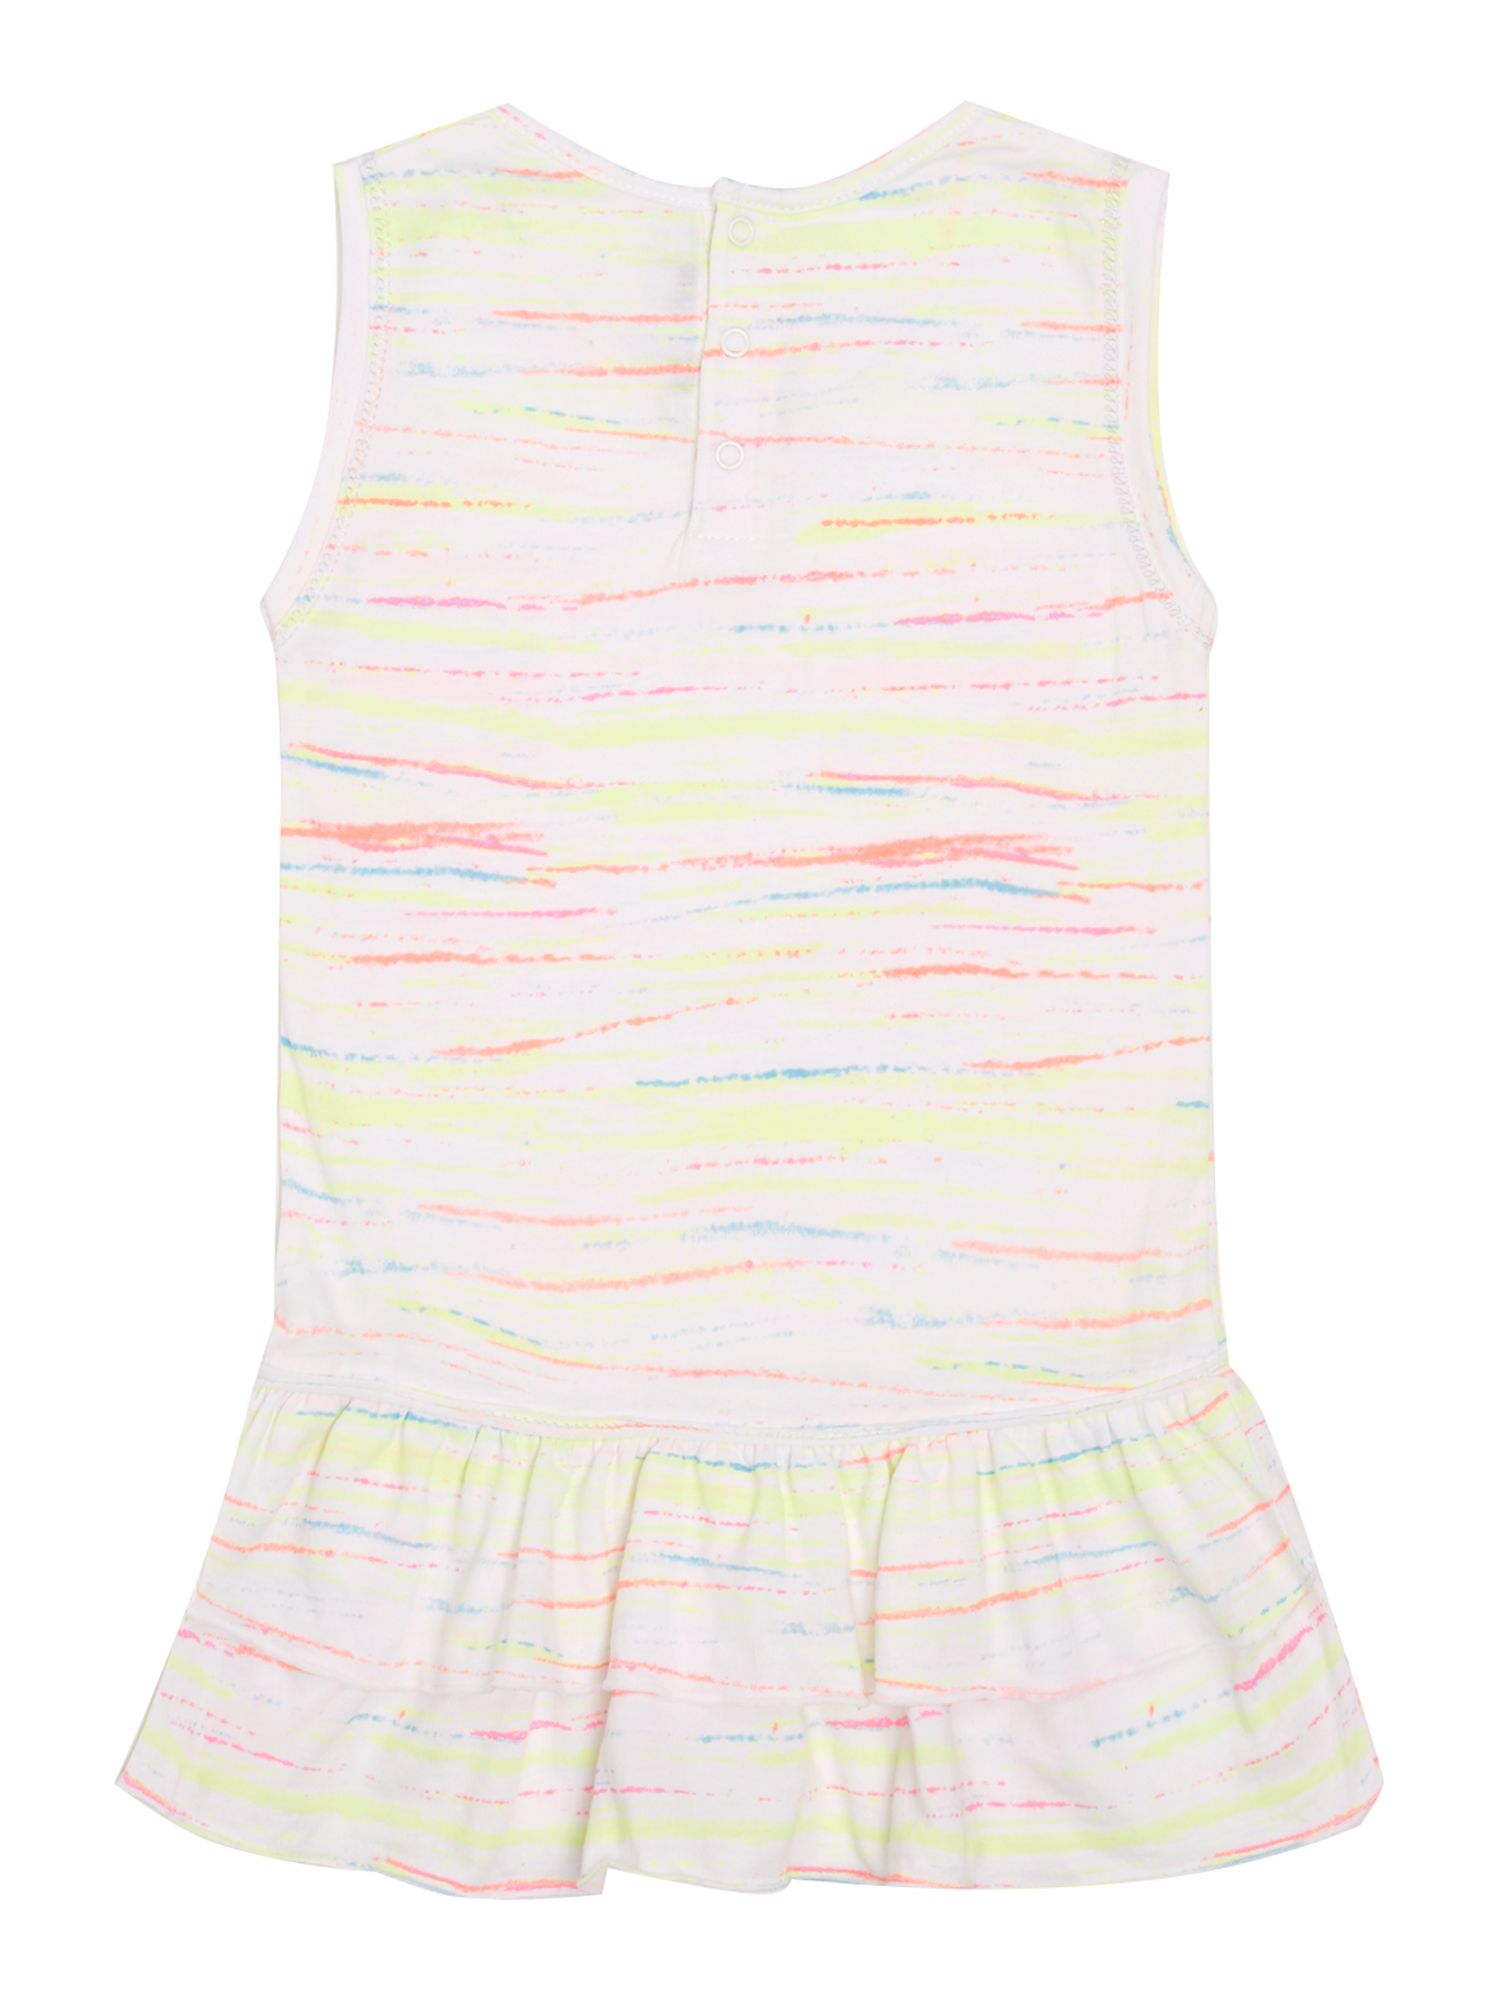 Girls heart and rainbow sleeveless dress